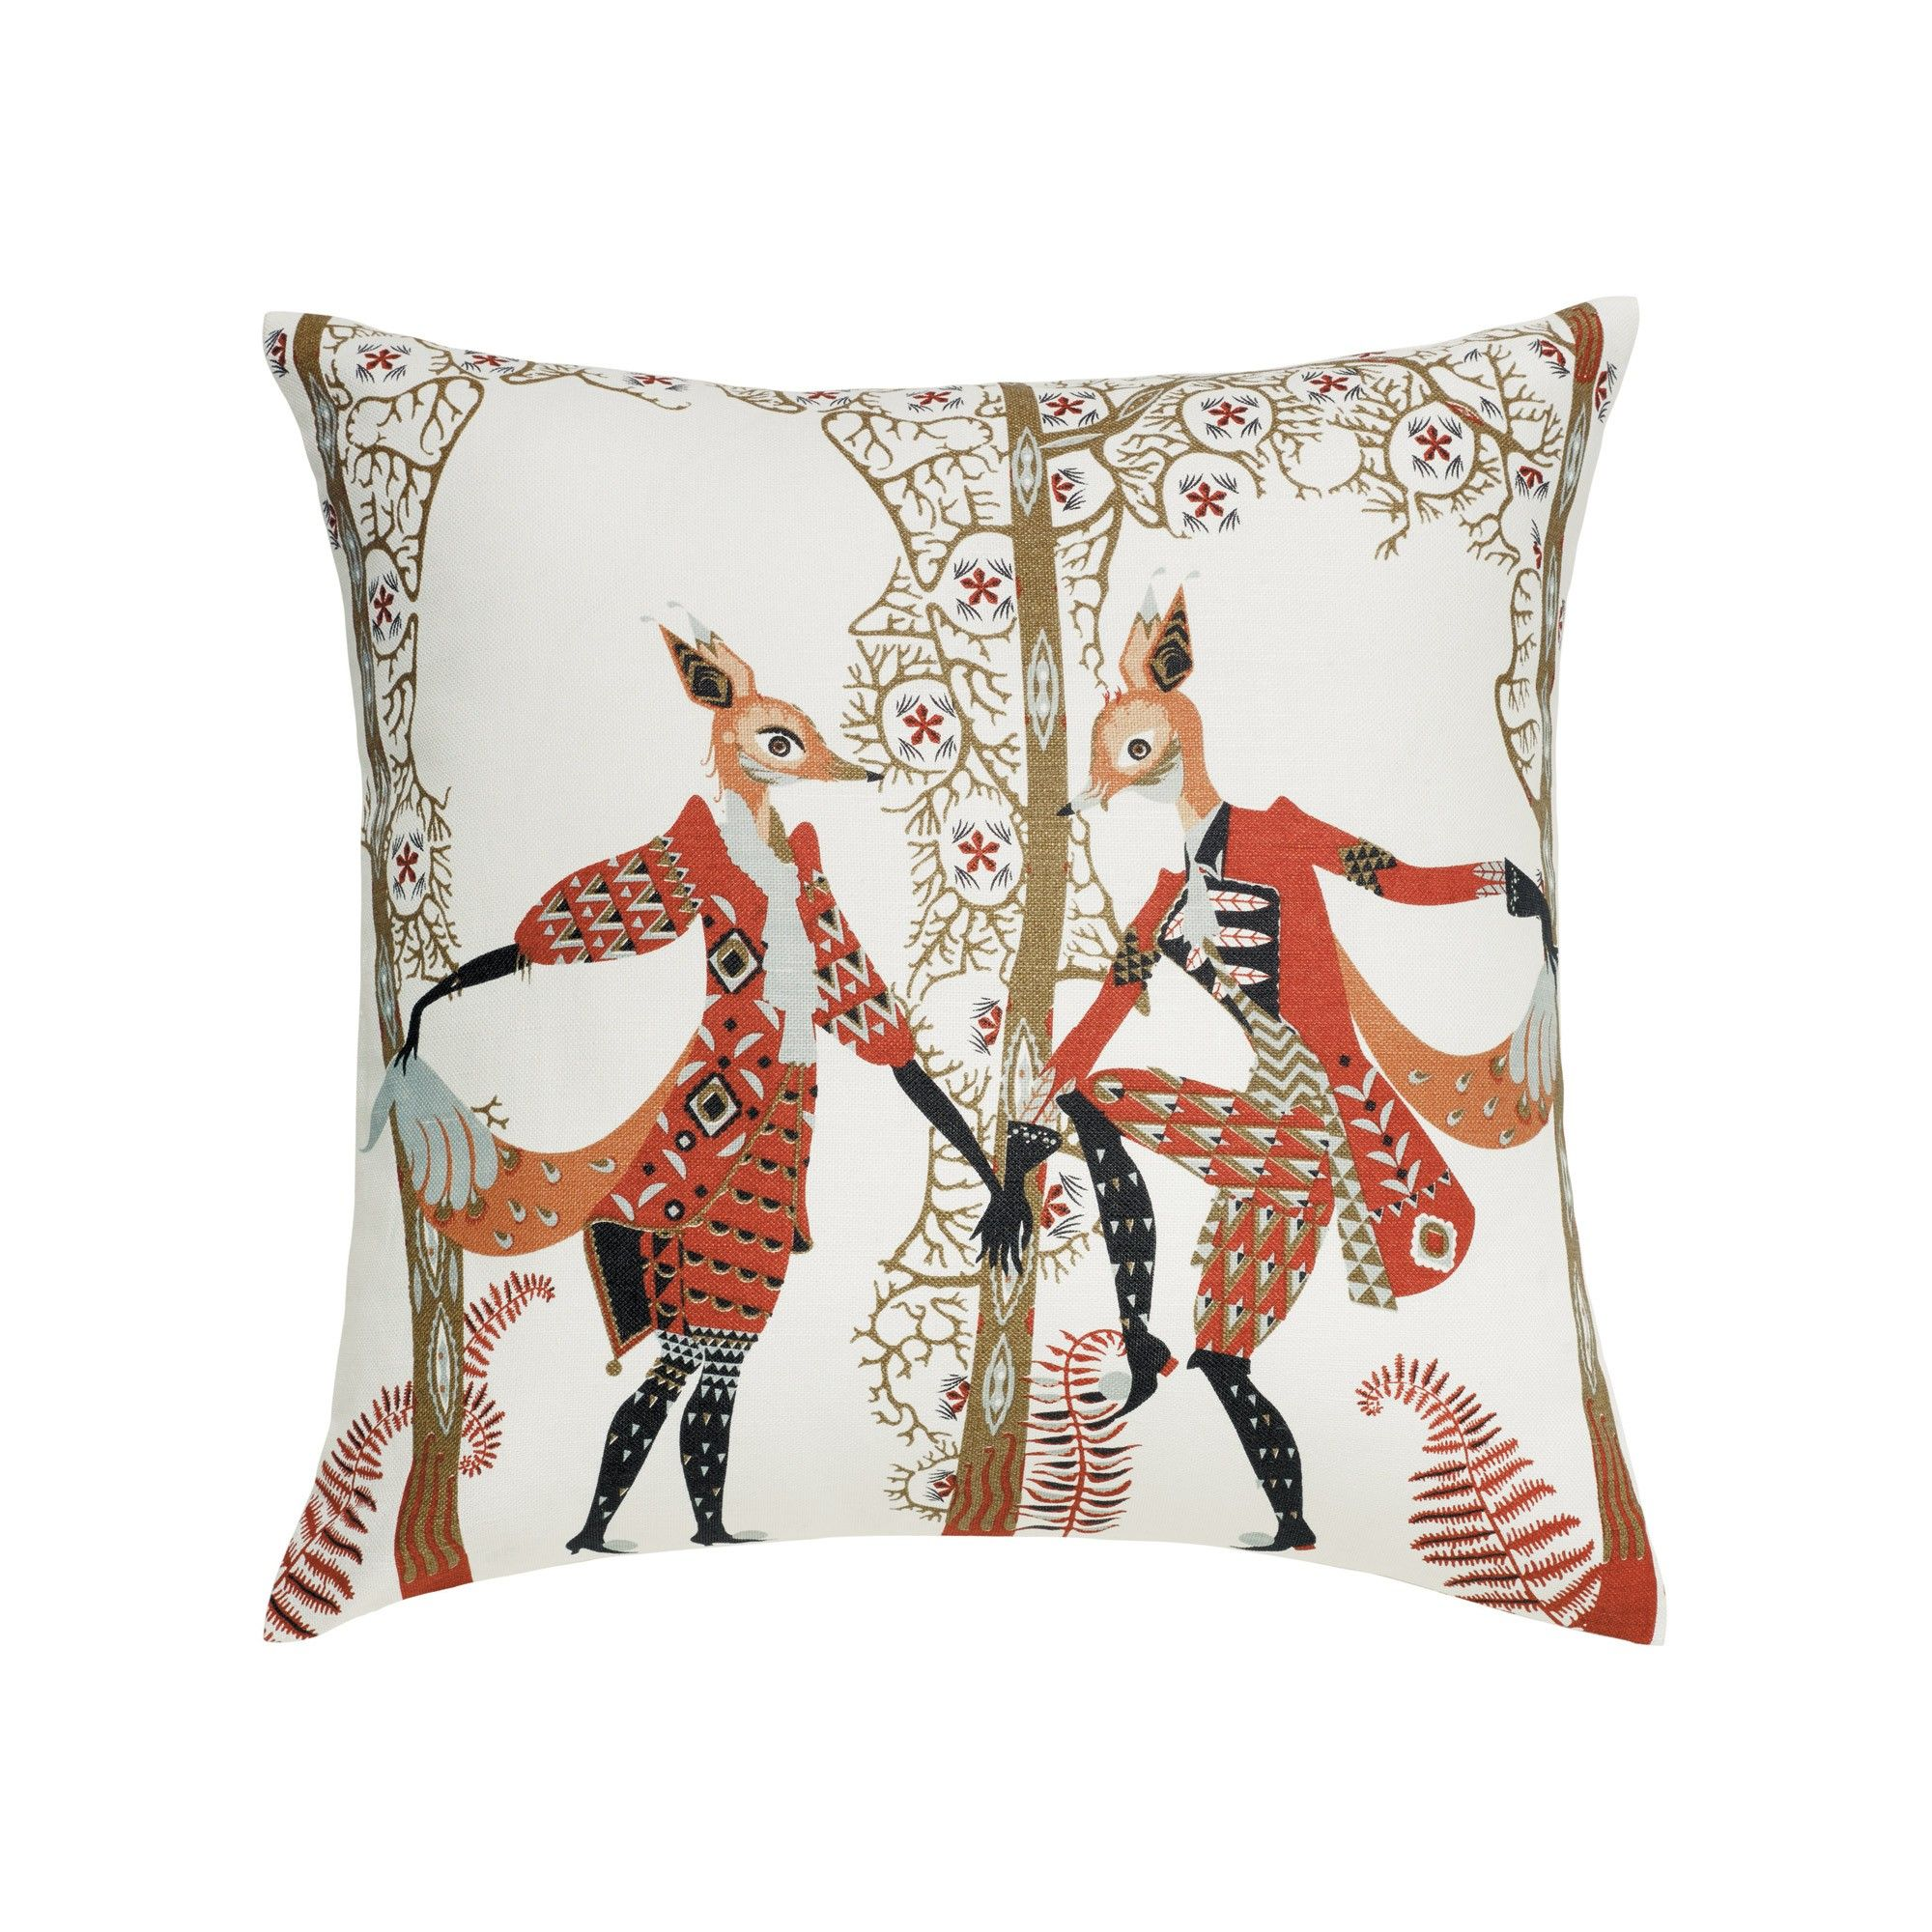 Tanssi cushion £69